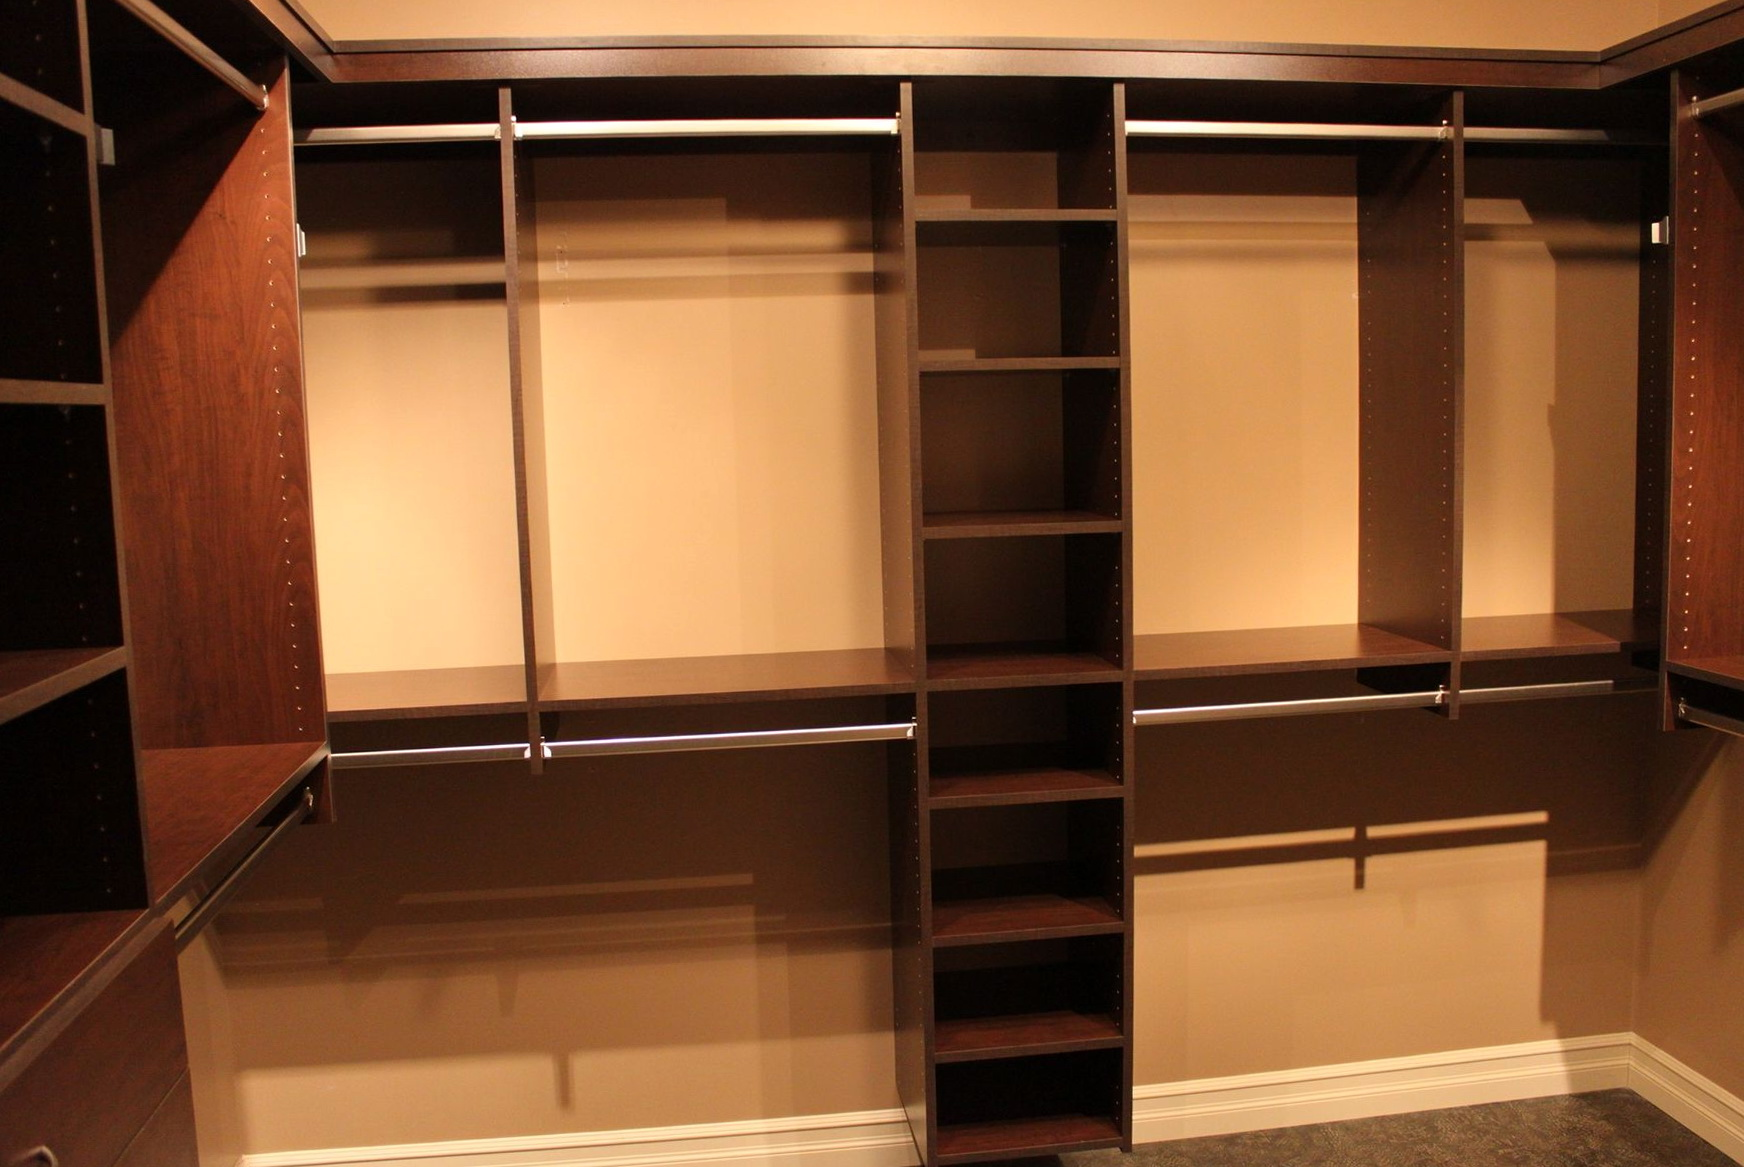 Diy California Closet | Diy Walk in Closet | Prefab Closet Systems